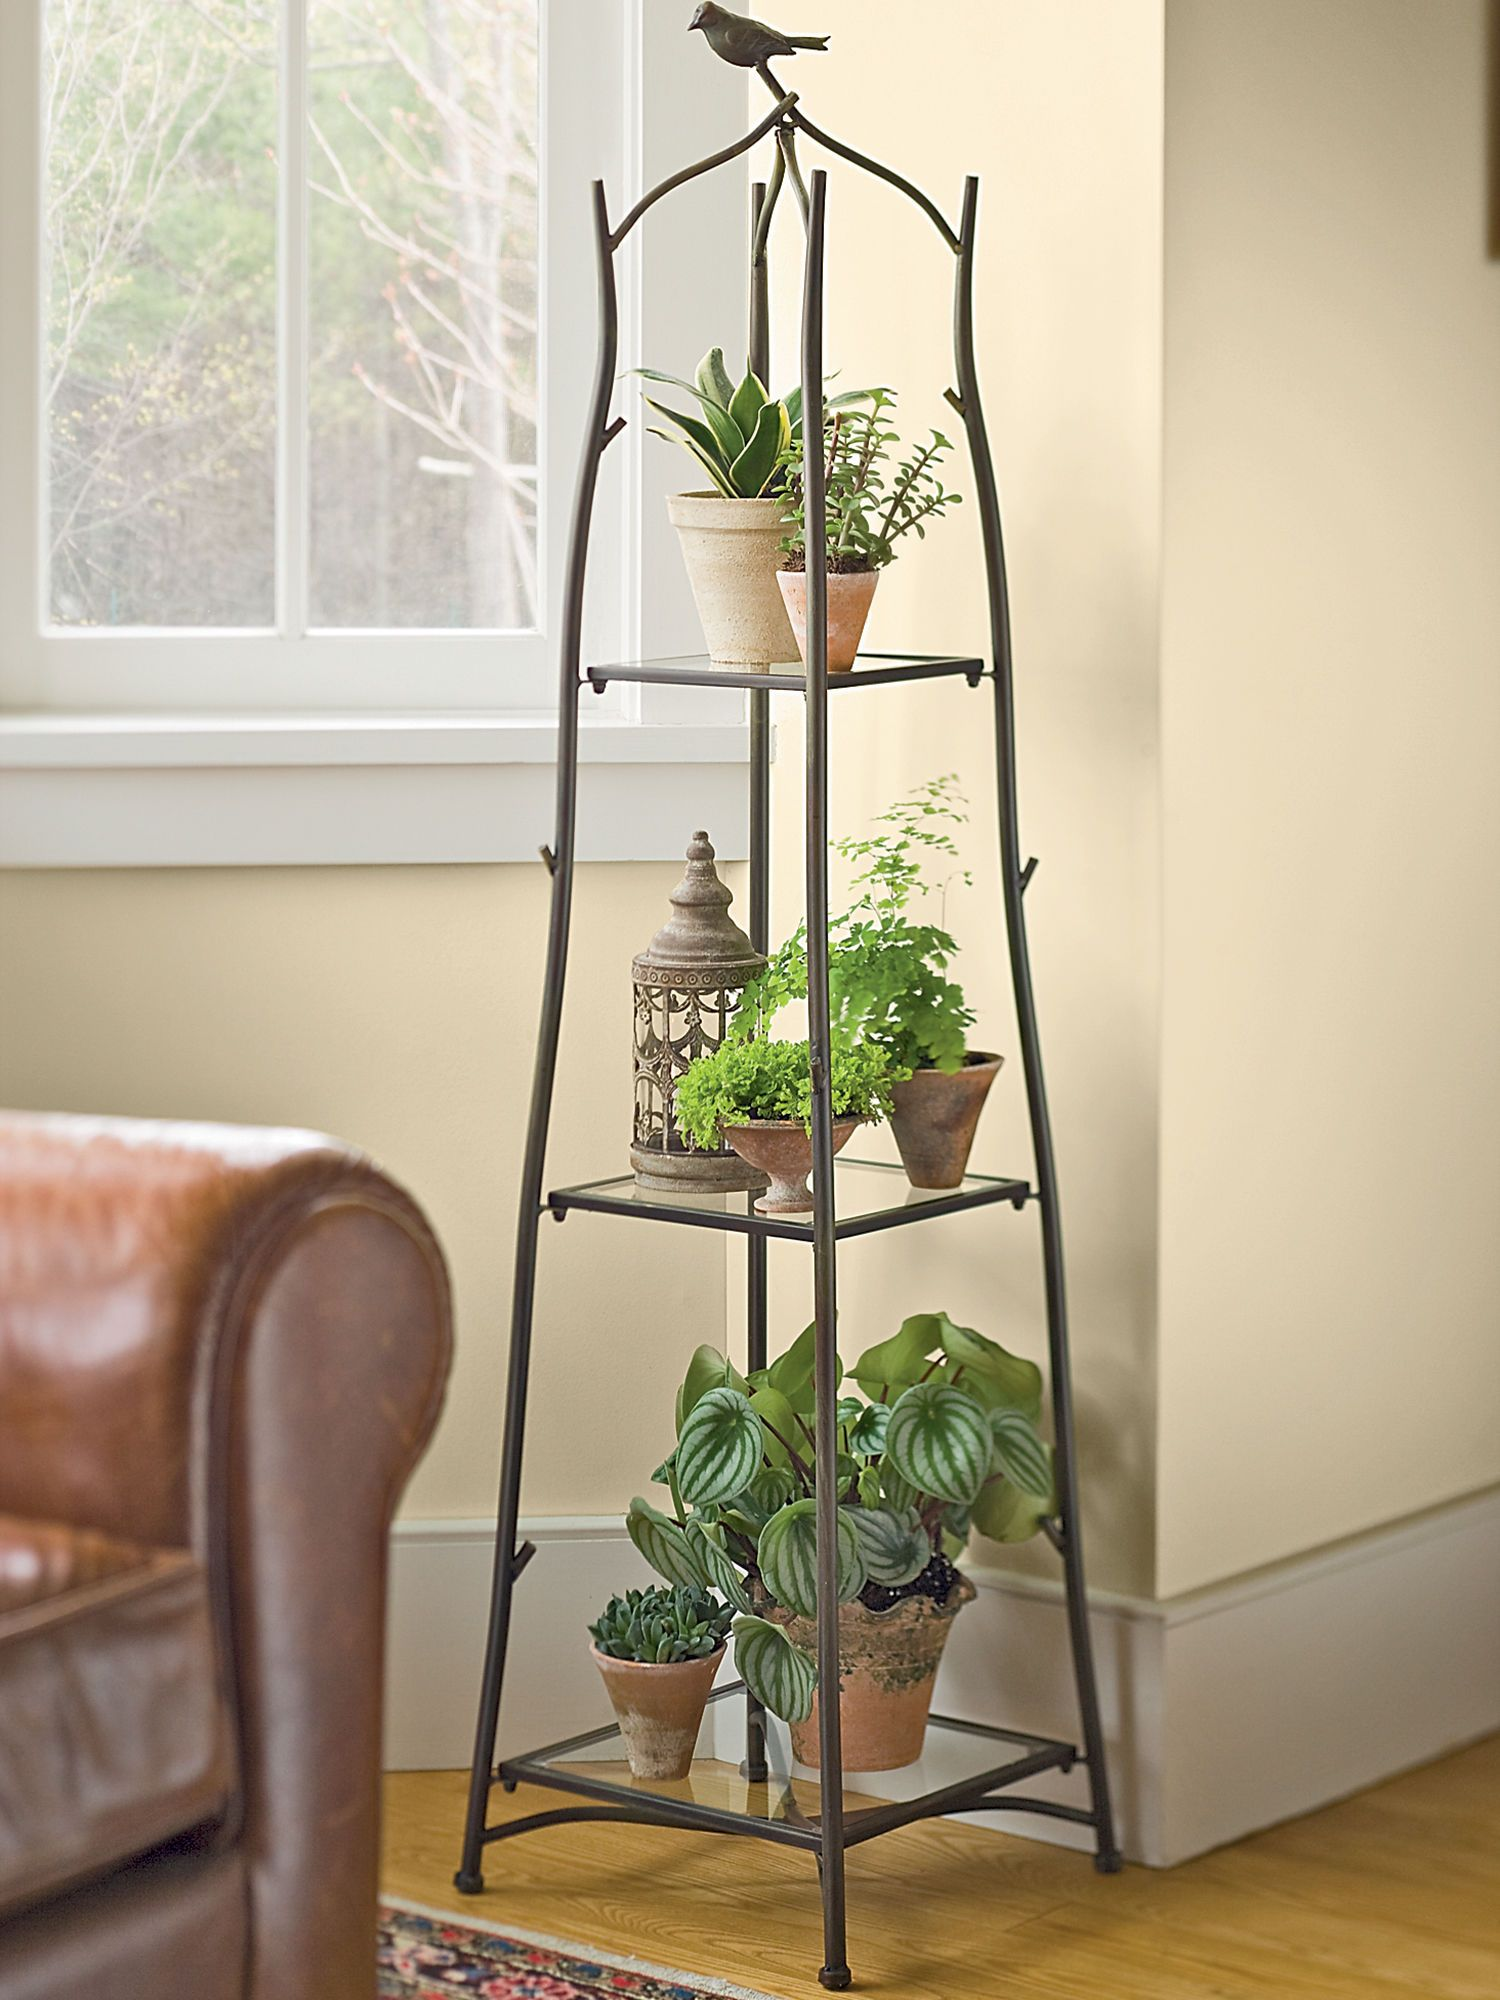 A Frame Plant Stand And Tray Set Ladder Branch  home decorating     A Frame Plant Stand And Tray Set Ladder Branch  home decorating catalogs   christian home decor  home decorators collection coupon